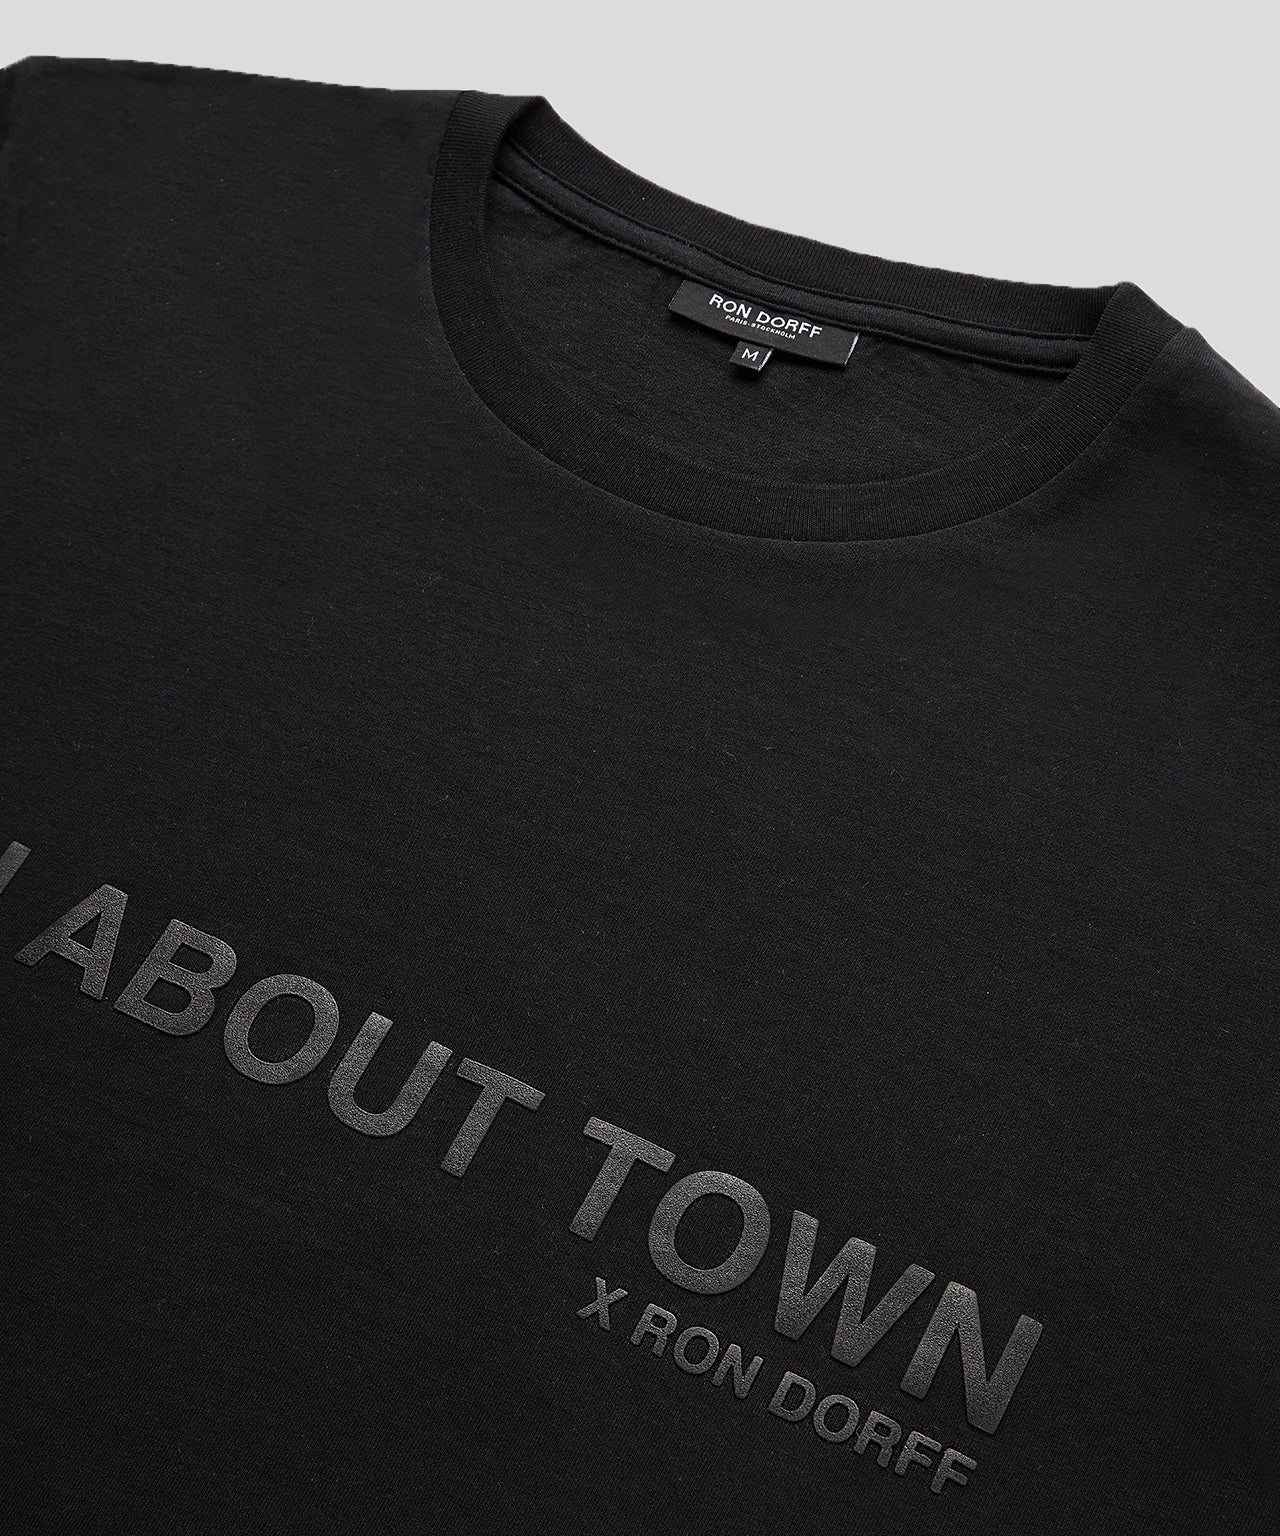 T-Shirt MAN ABOUT TOWN - black